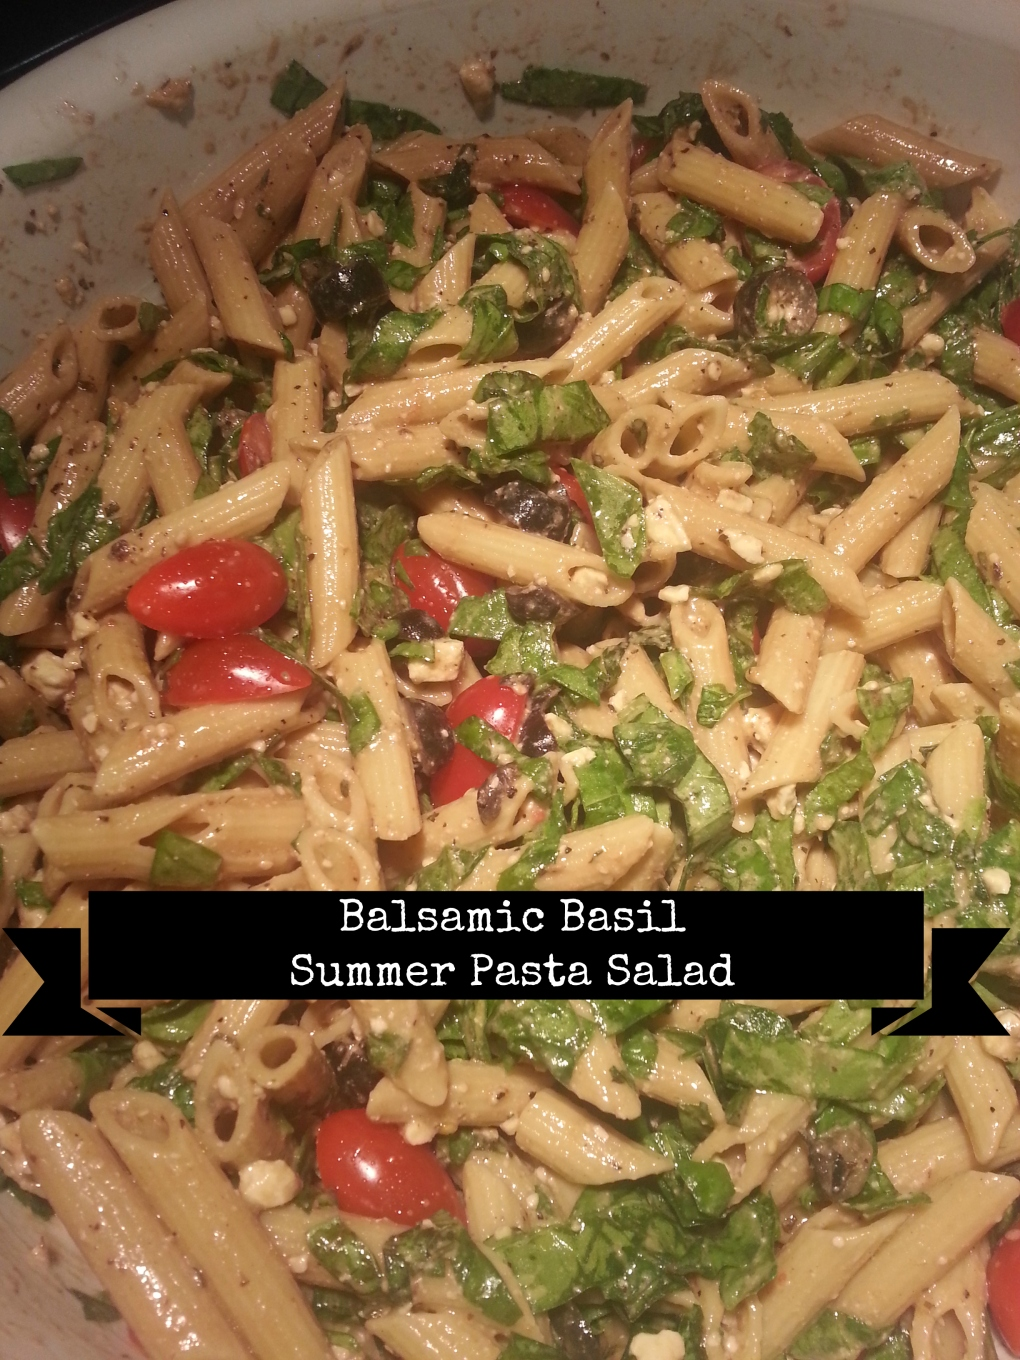 balsamic basil summer pasta salad